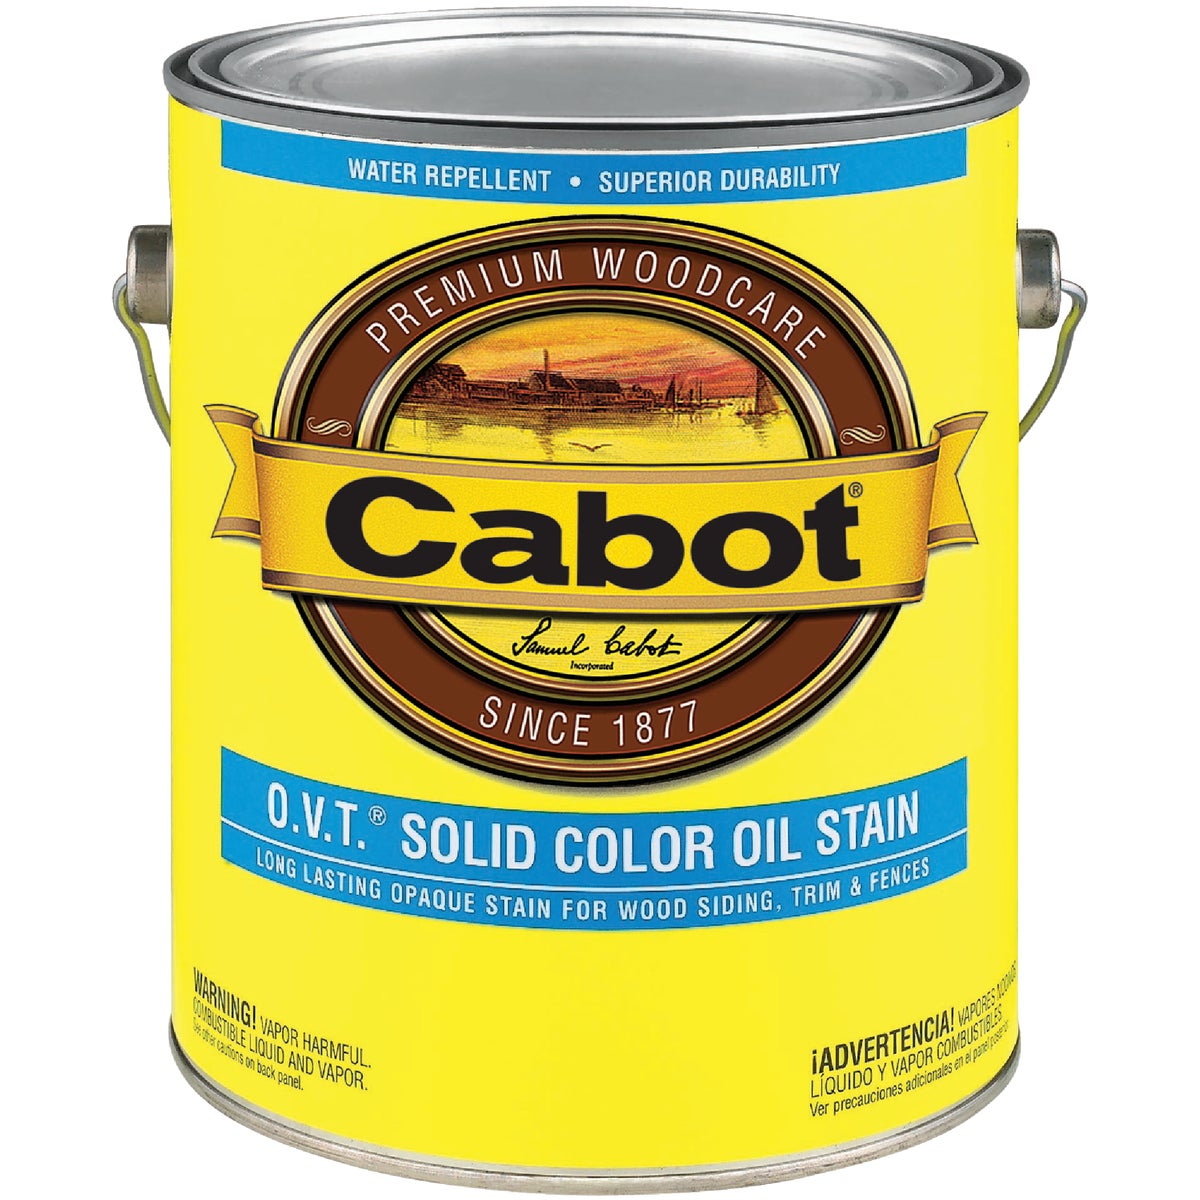 NEUT BS OVT SOLID STAIN - 140.0006706.007 by Valspar Corp